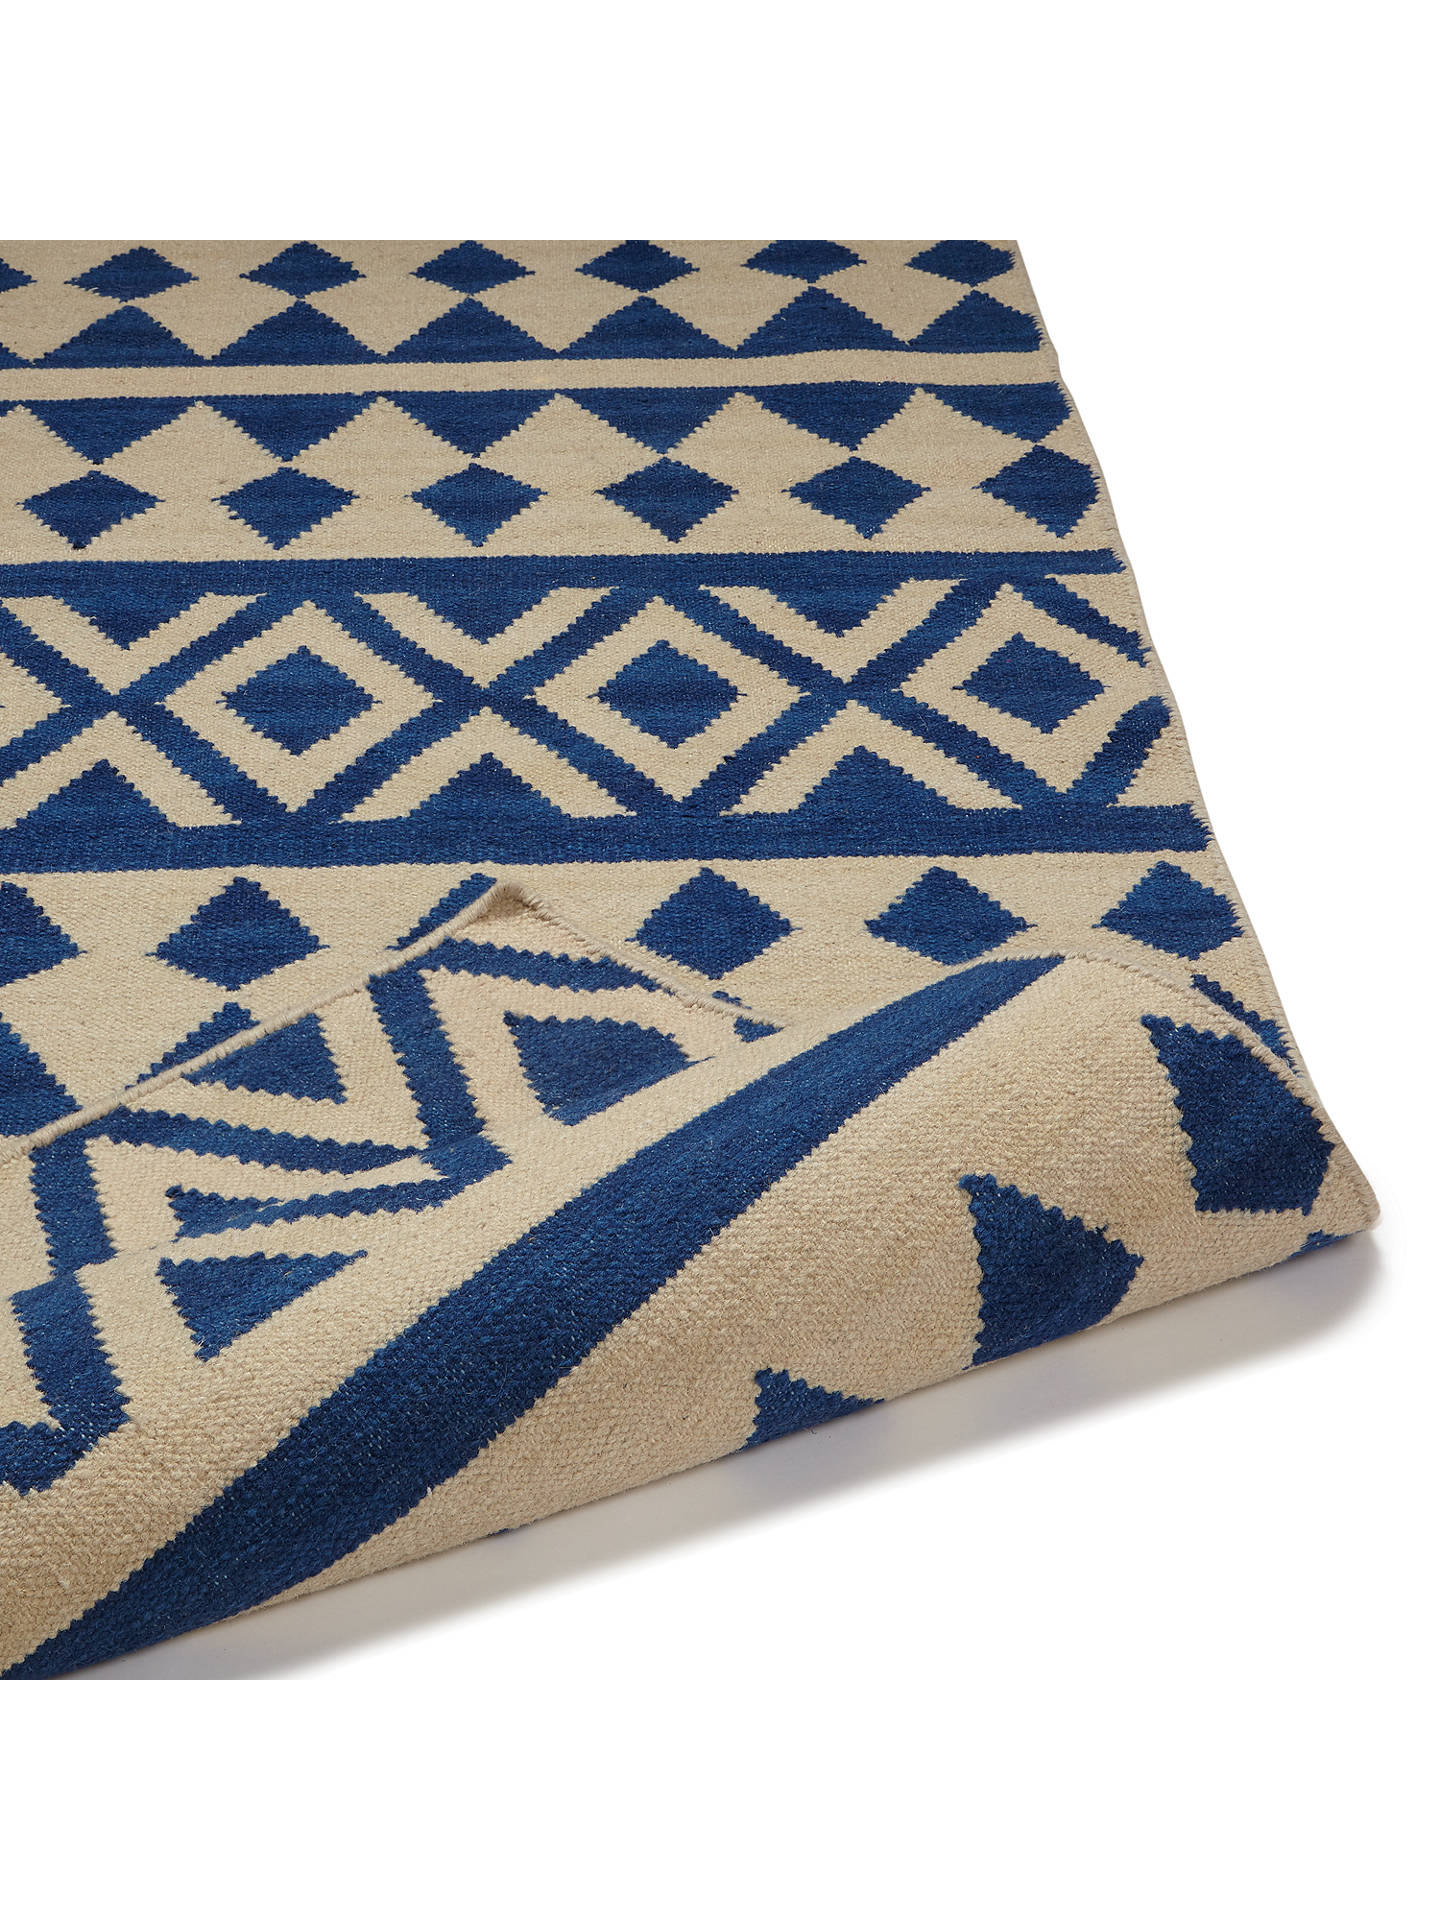 BuyJohn Lewis & Partners Modasa Runner Rug, 240 x 70cm, Blue/White Online at johnlewis.com